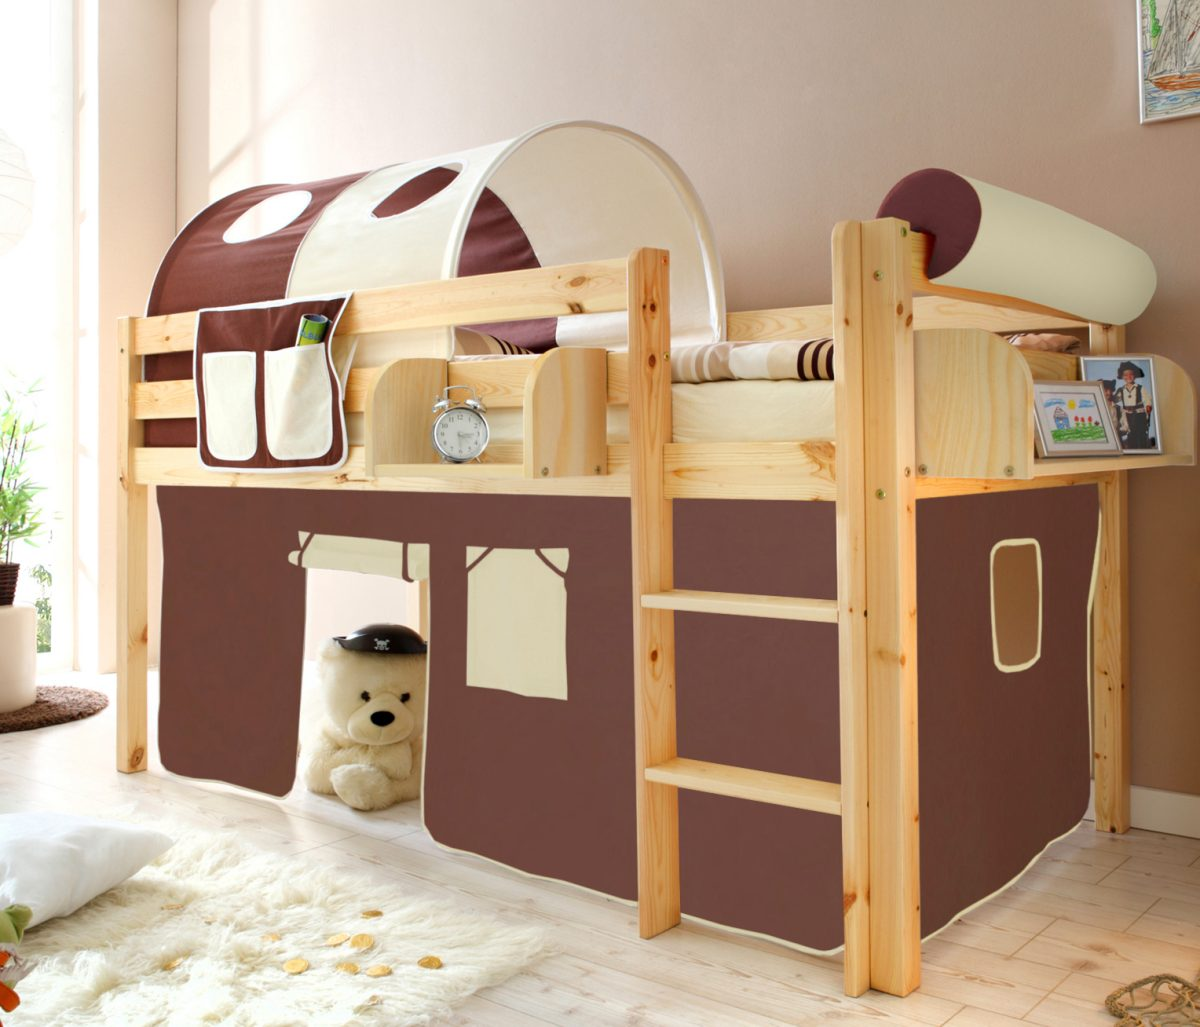 kinder hochbett malte kiefer natur von ticaa sehr hochwertiges und sicheres kinderhochbett. Black Bedroom Furniture Sets. Home Design Ideas